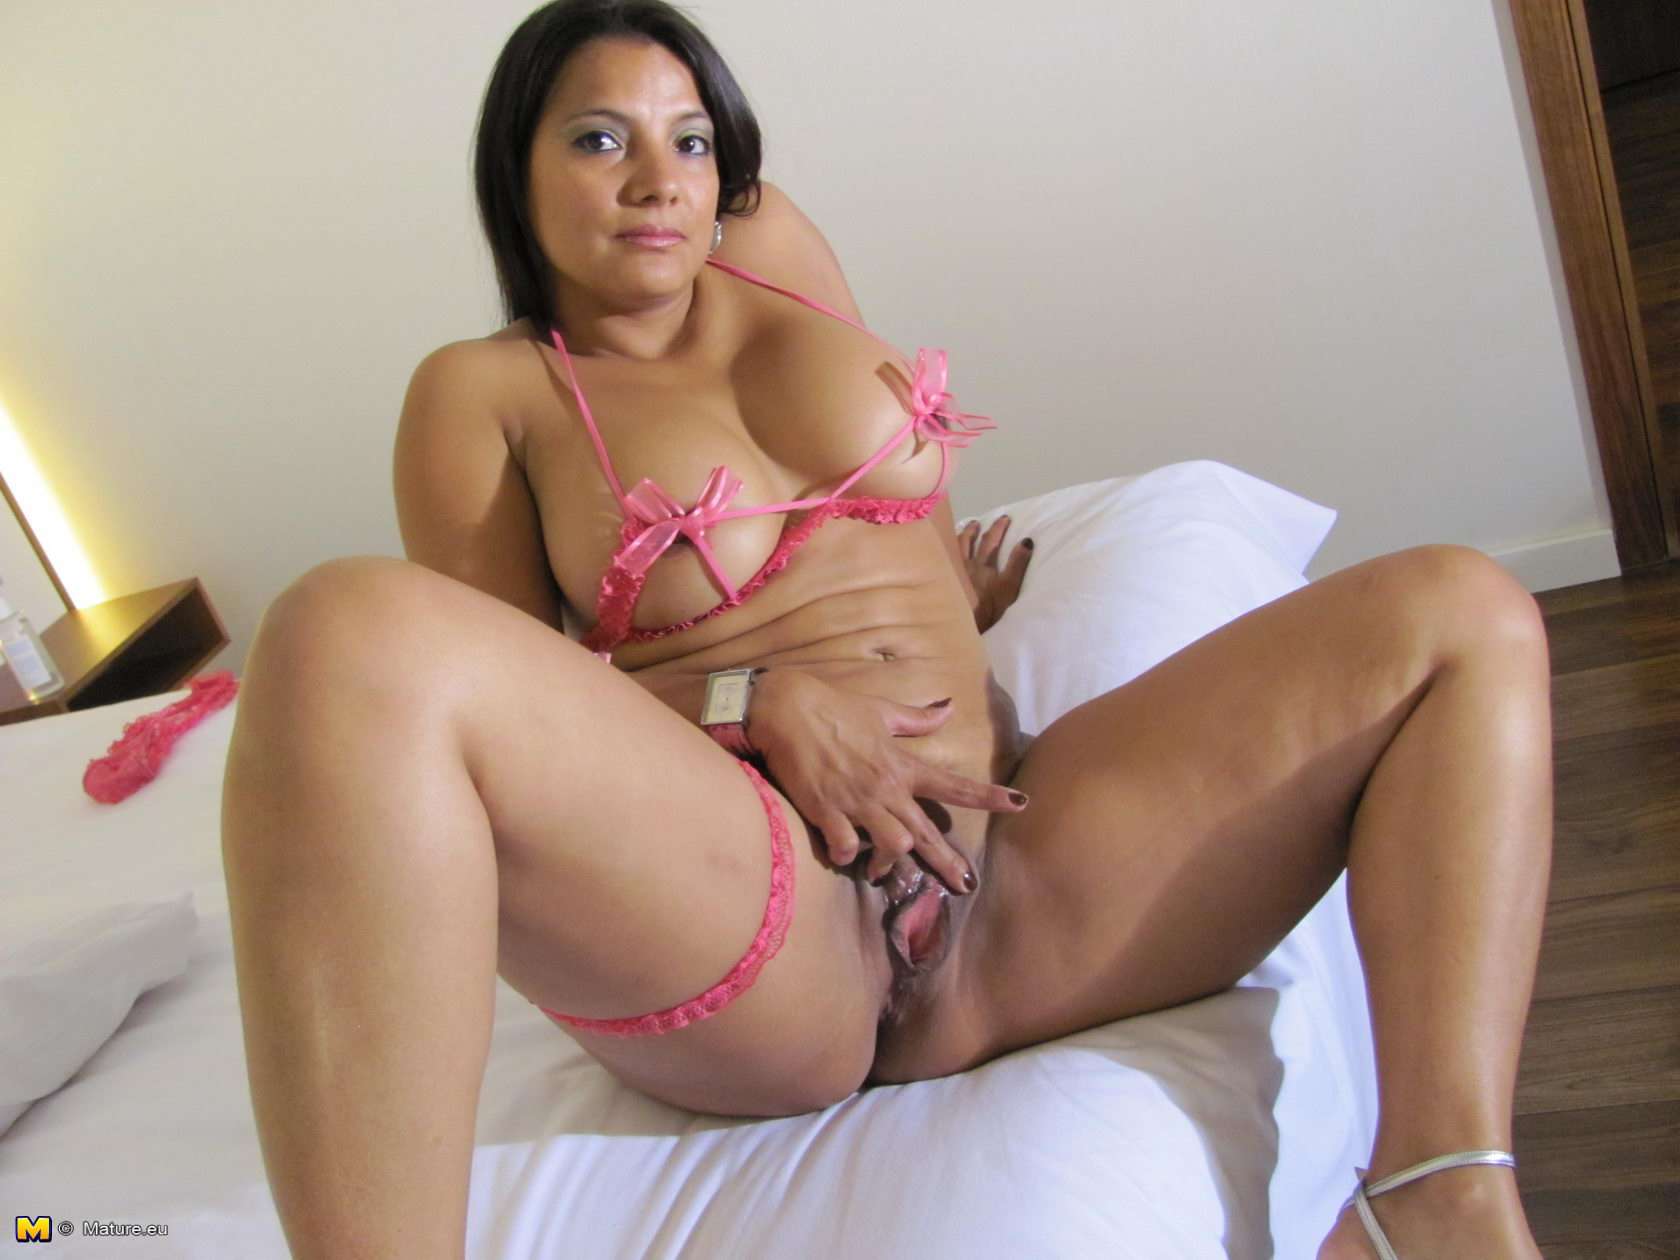 Afraid, that Good latina sex online charming